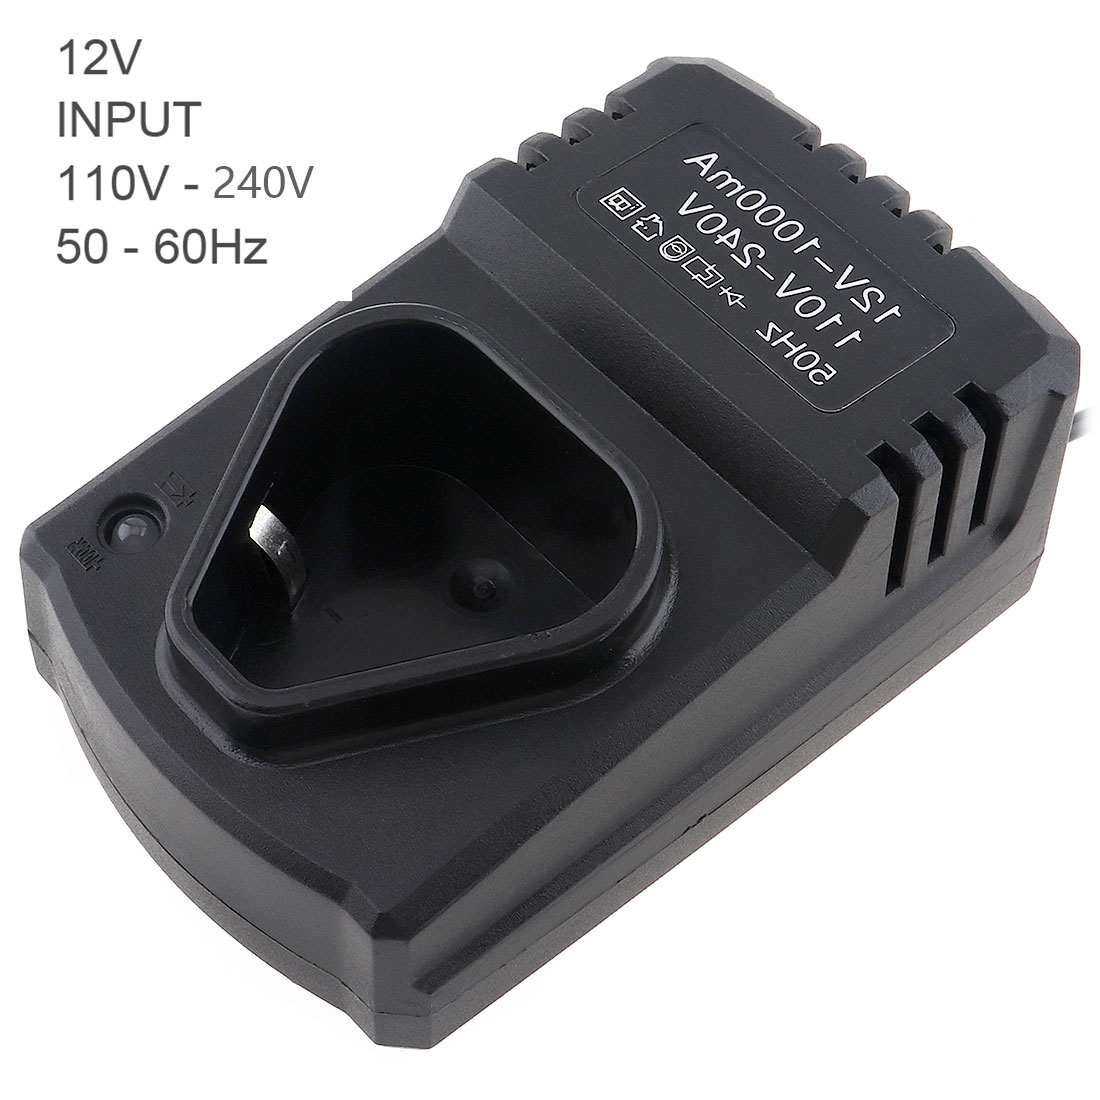 12V DC Portable Multifunction Li-ion Rechargeable Charger Support 110-220V Power Source For Lithium Drill / Electrical Wrench